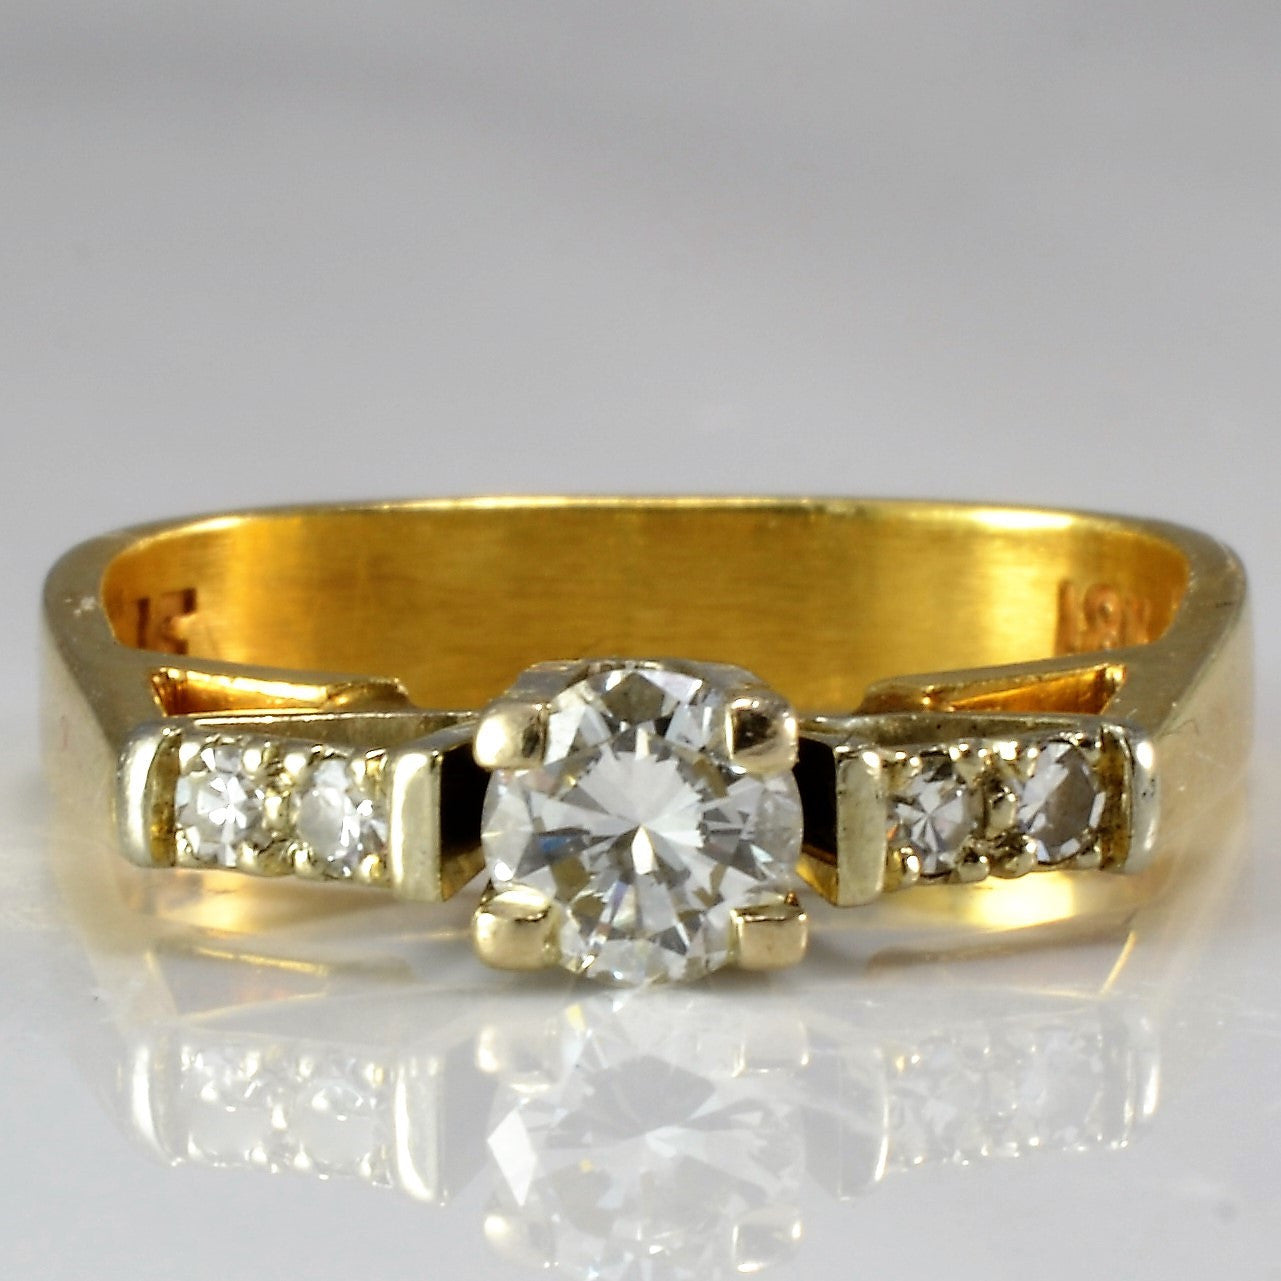 High Set Engagement Ring | 0.29 ctw, SZ 4.75 |